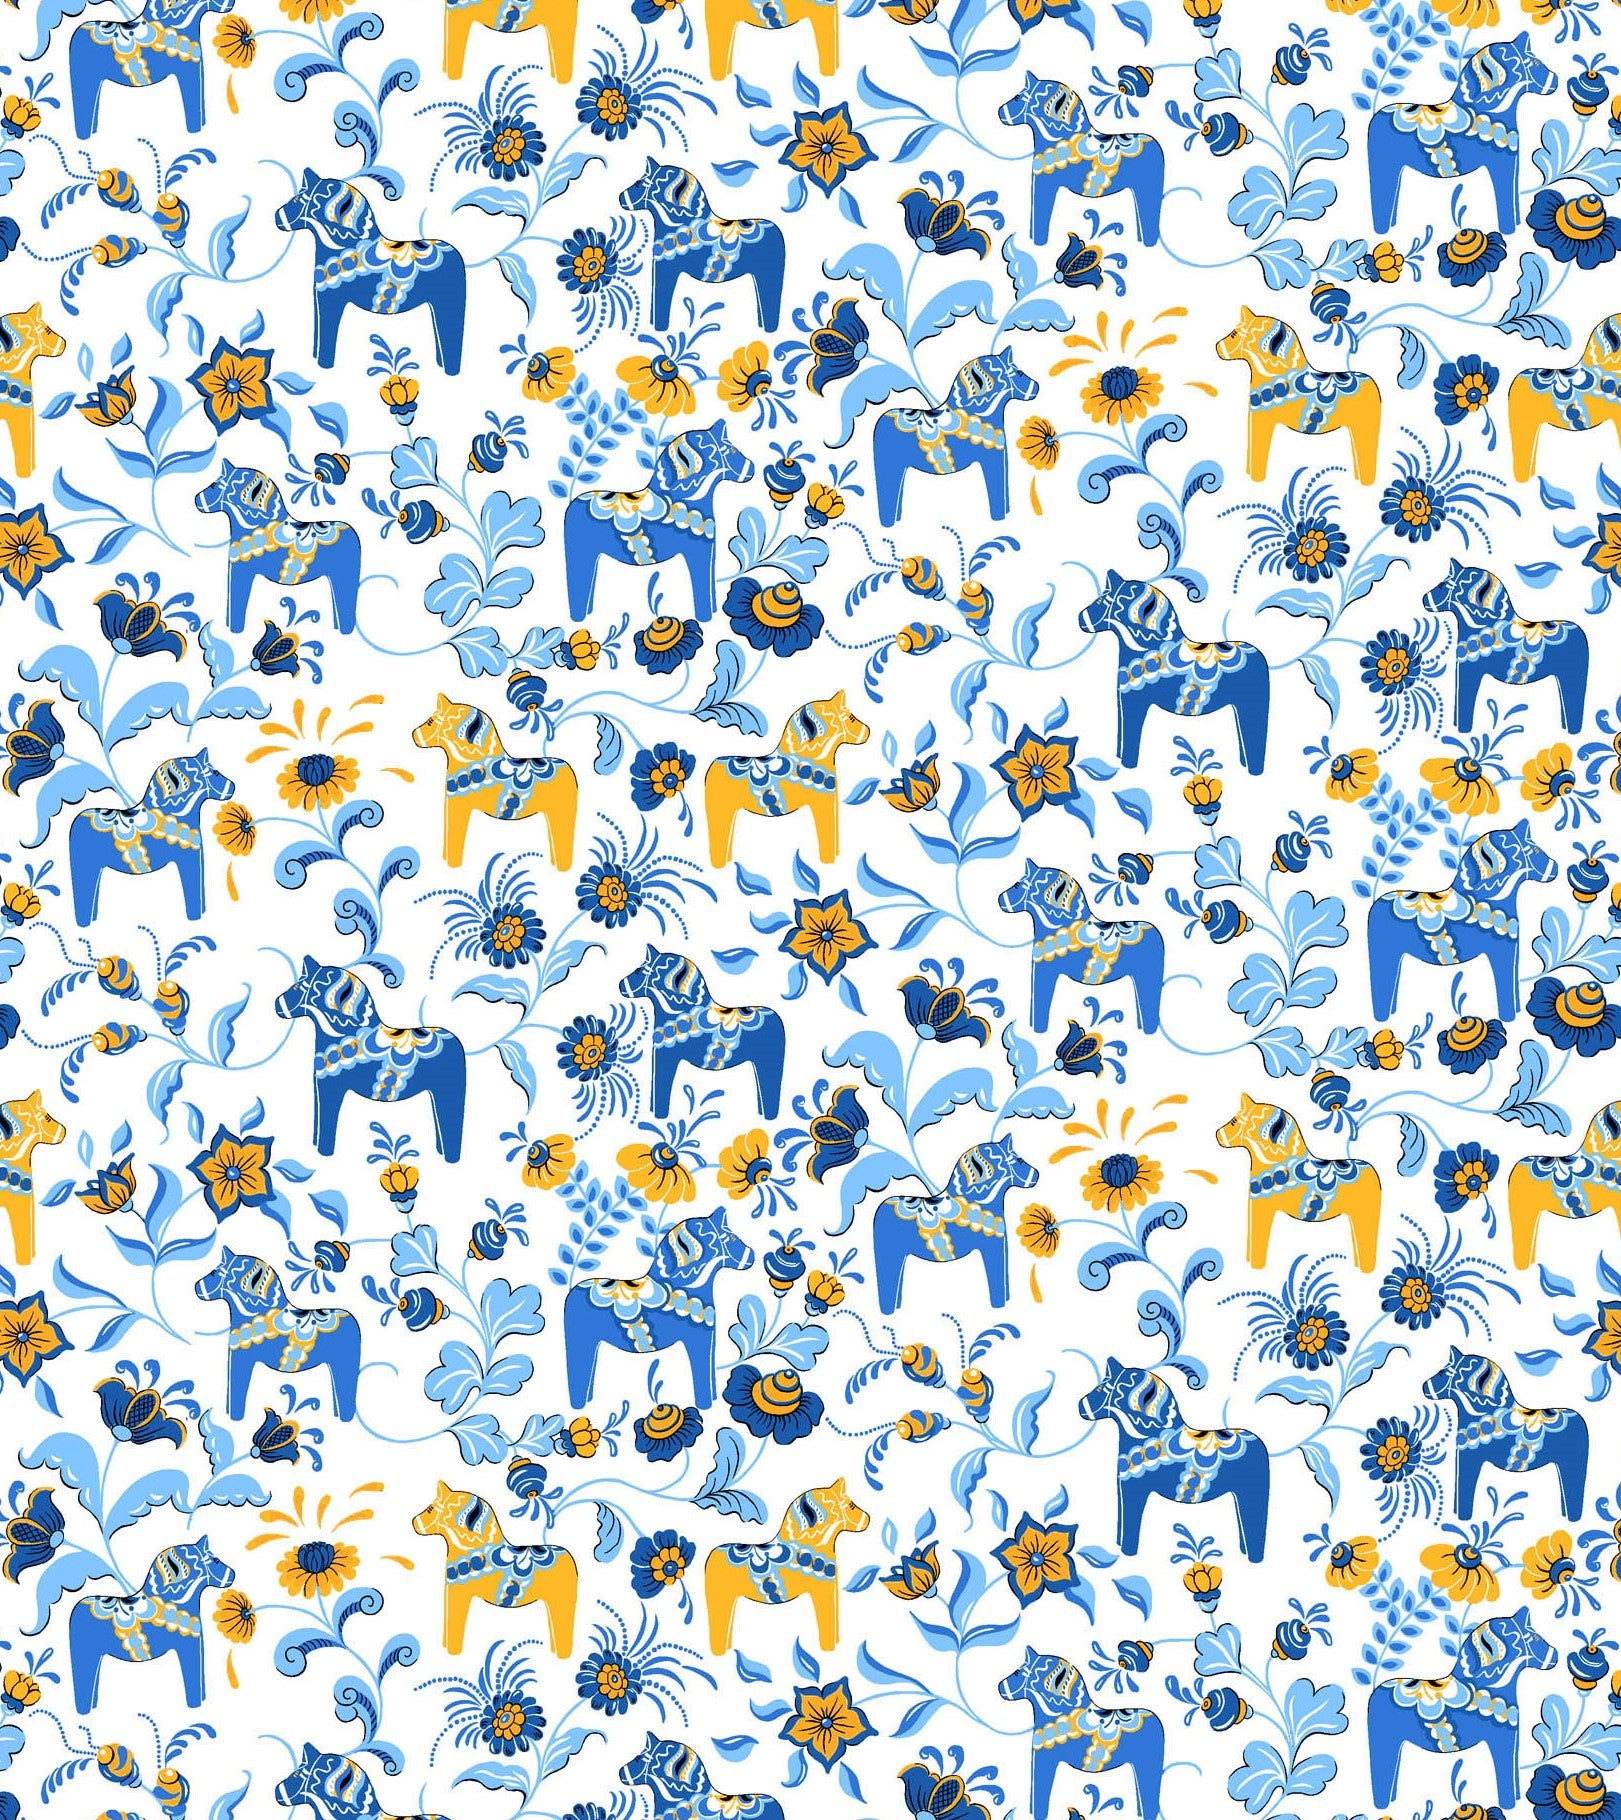 Fabric 4. White Background with Blue and Gold Mini Dala Häst